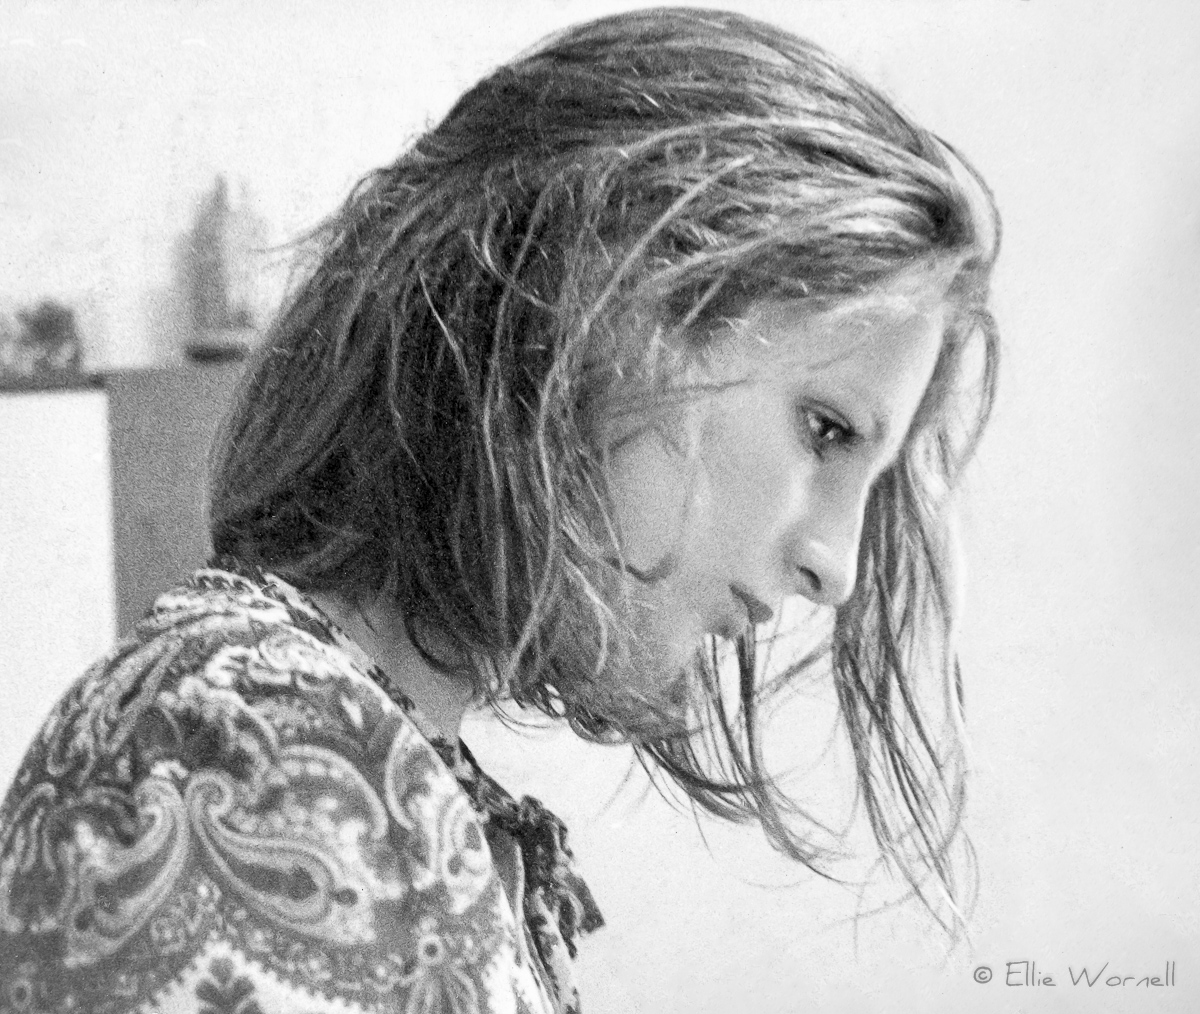 Ellie Wornell (Kennard) - 1968. Photo taken by Peter Erskine